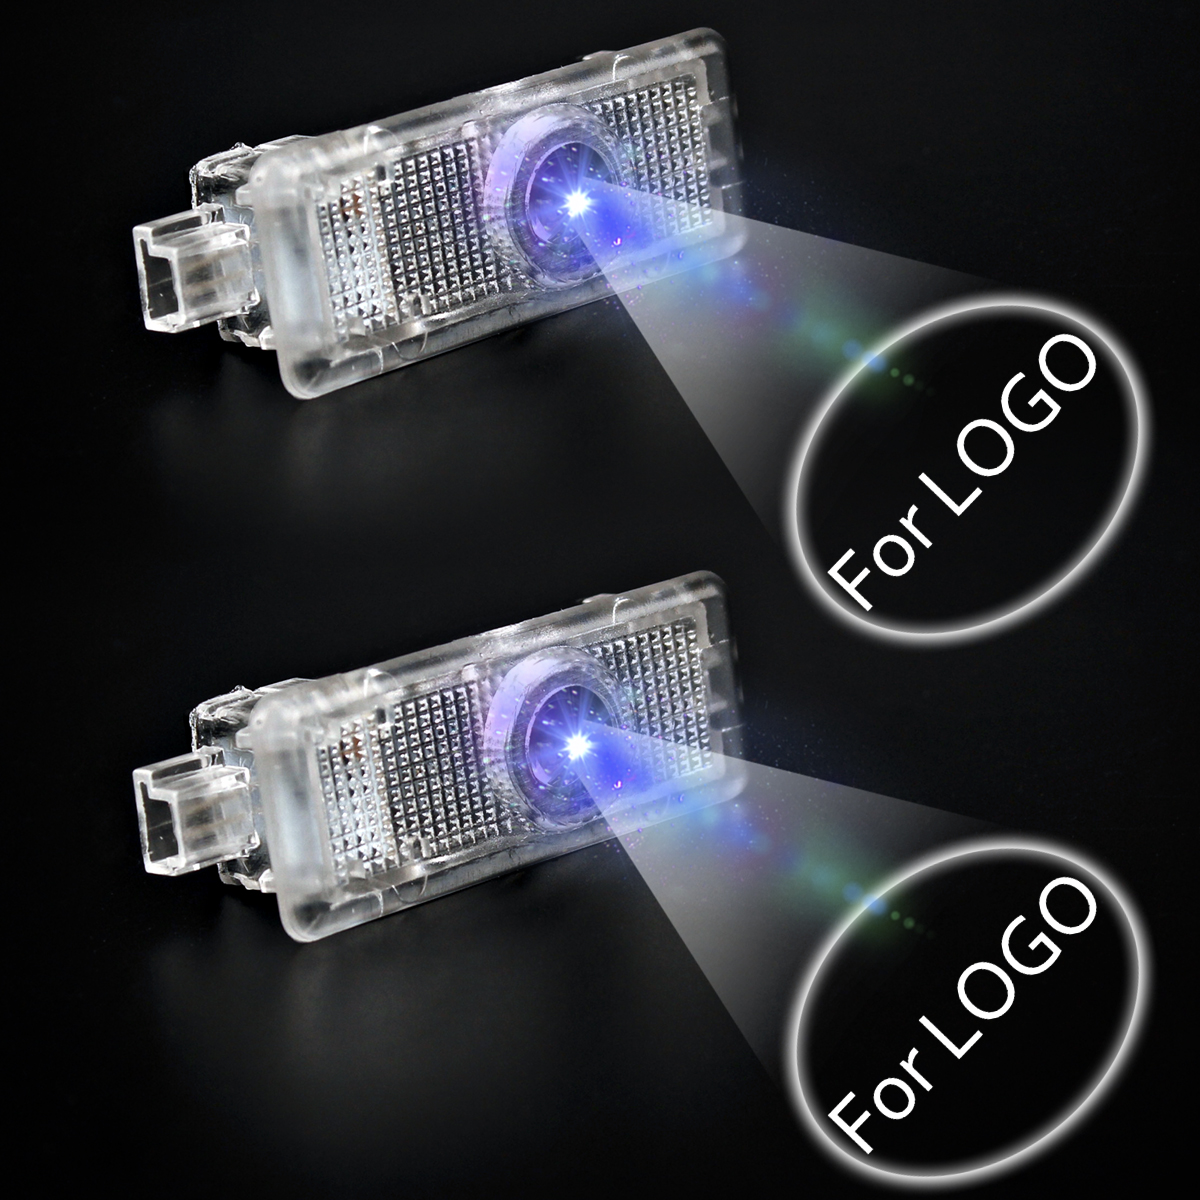 2pcs lot Car Logo Projector Light For AMG Logo CLA AMG A207 W218 CLS C207 C117 Car Styling Welcome Light LED Car Door Light in Signal Lamp from Automobiles Motorcycles